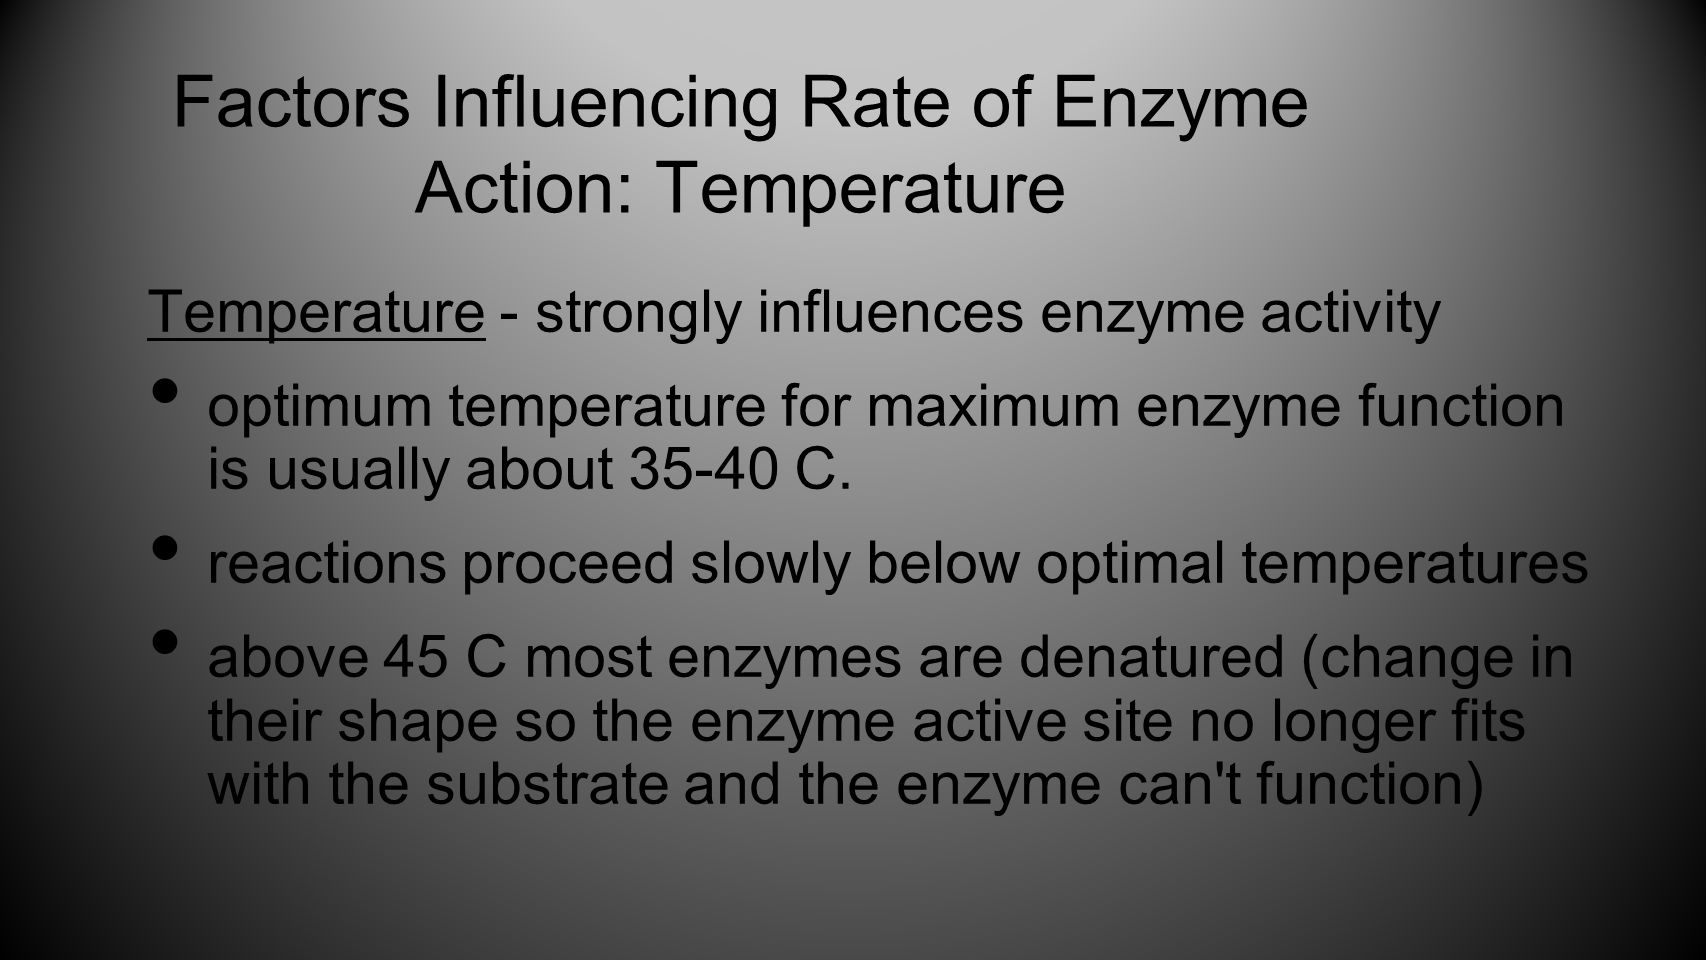 Factors Influencing Rate of Enzyme Action: Temperature